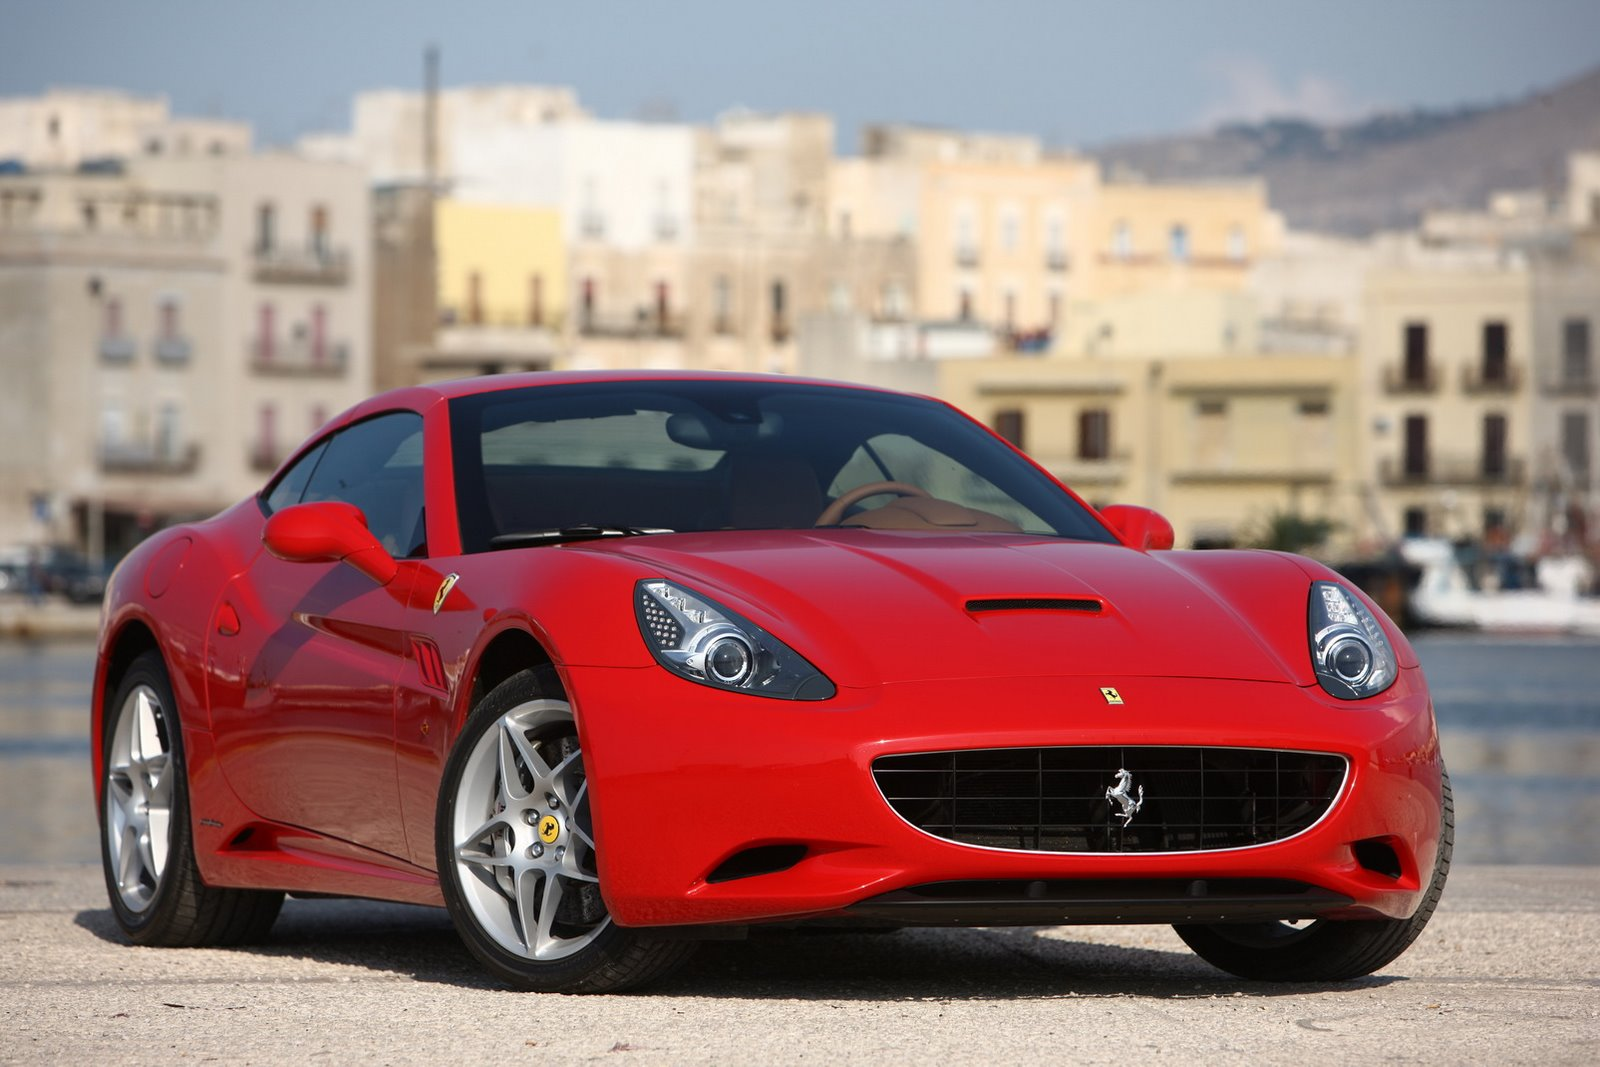 http://3.bp.blogspot.com/-PjoEz7zM8ps/UCSt6h5Nm2I/AAAAAAAABeU/xInQUn-aTpQ/s1600/Red-Ferrari-California-Picture-Wallpaper.jpg